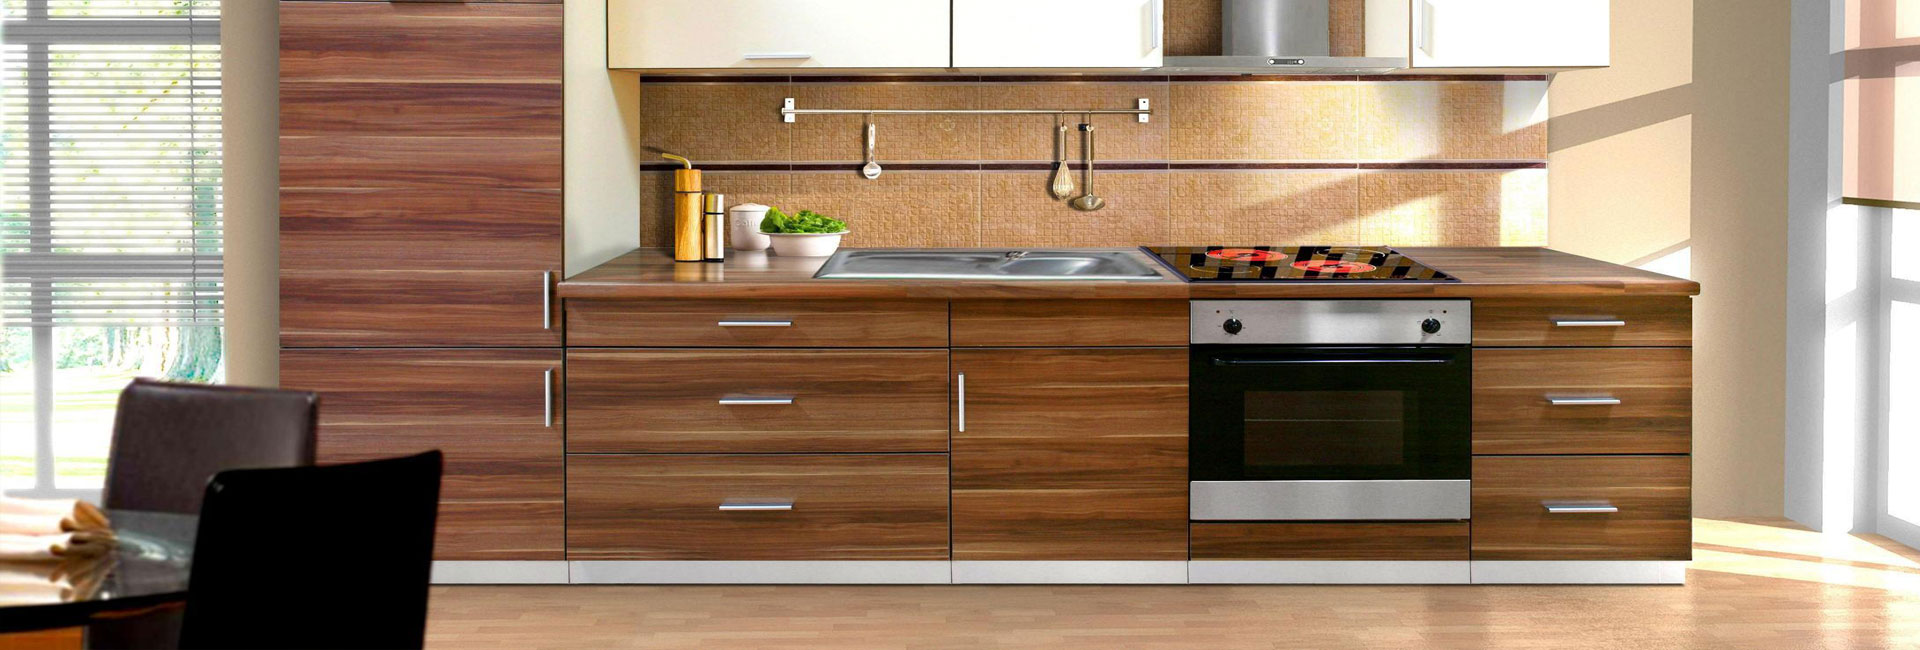 timbercirty-kitchen-cupboards